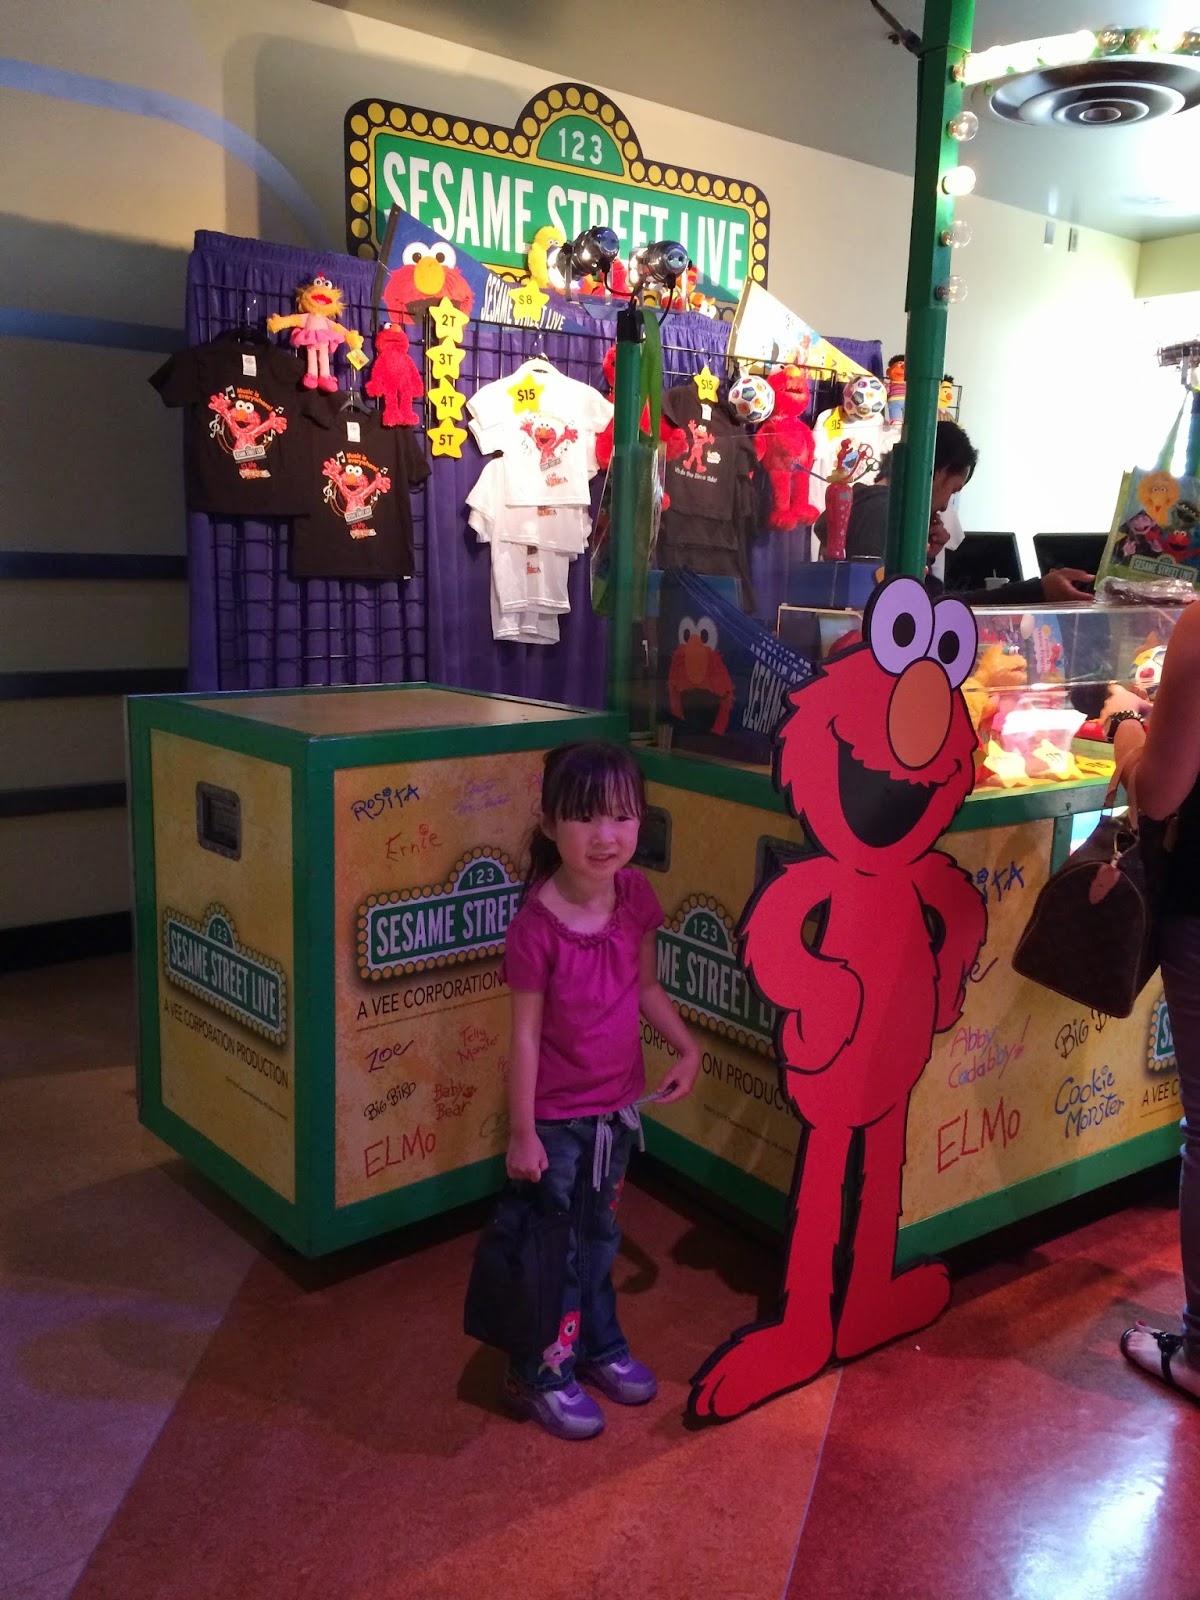 Review sesame street live make a new friend show fun things to do